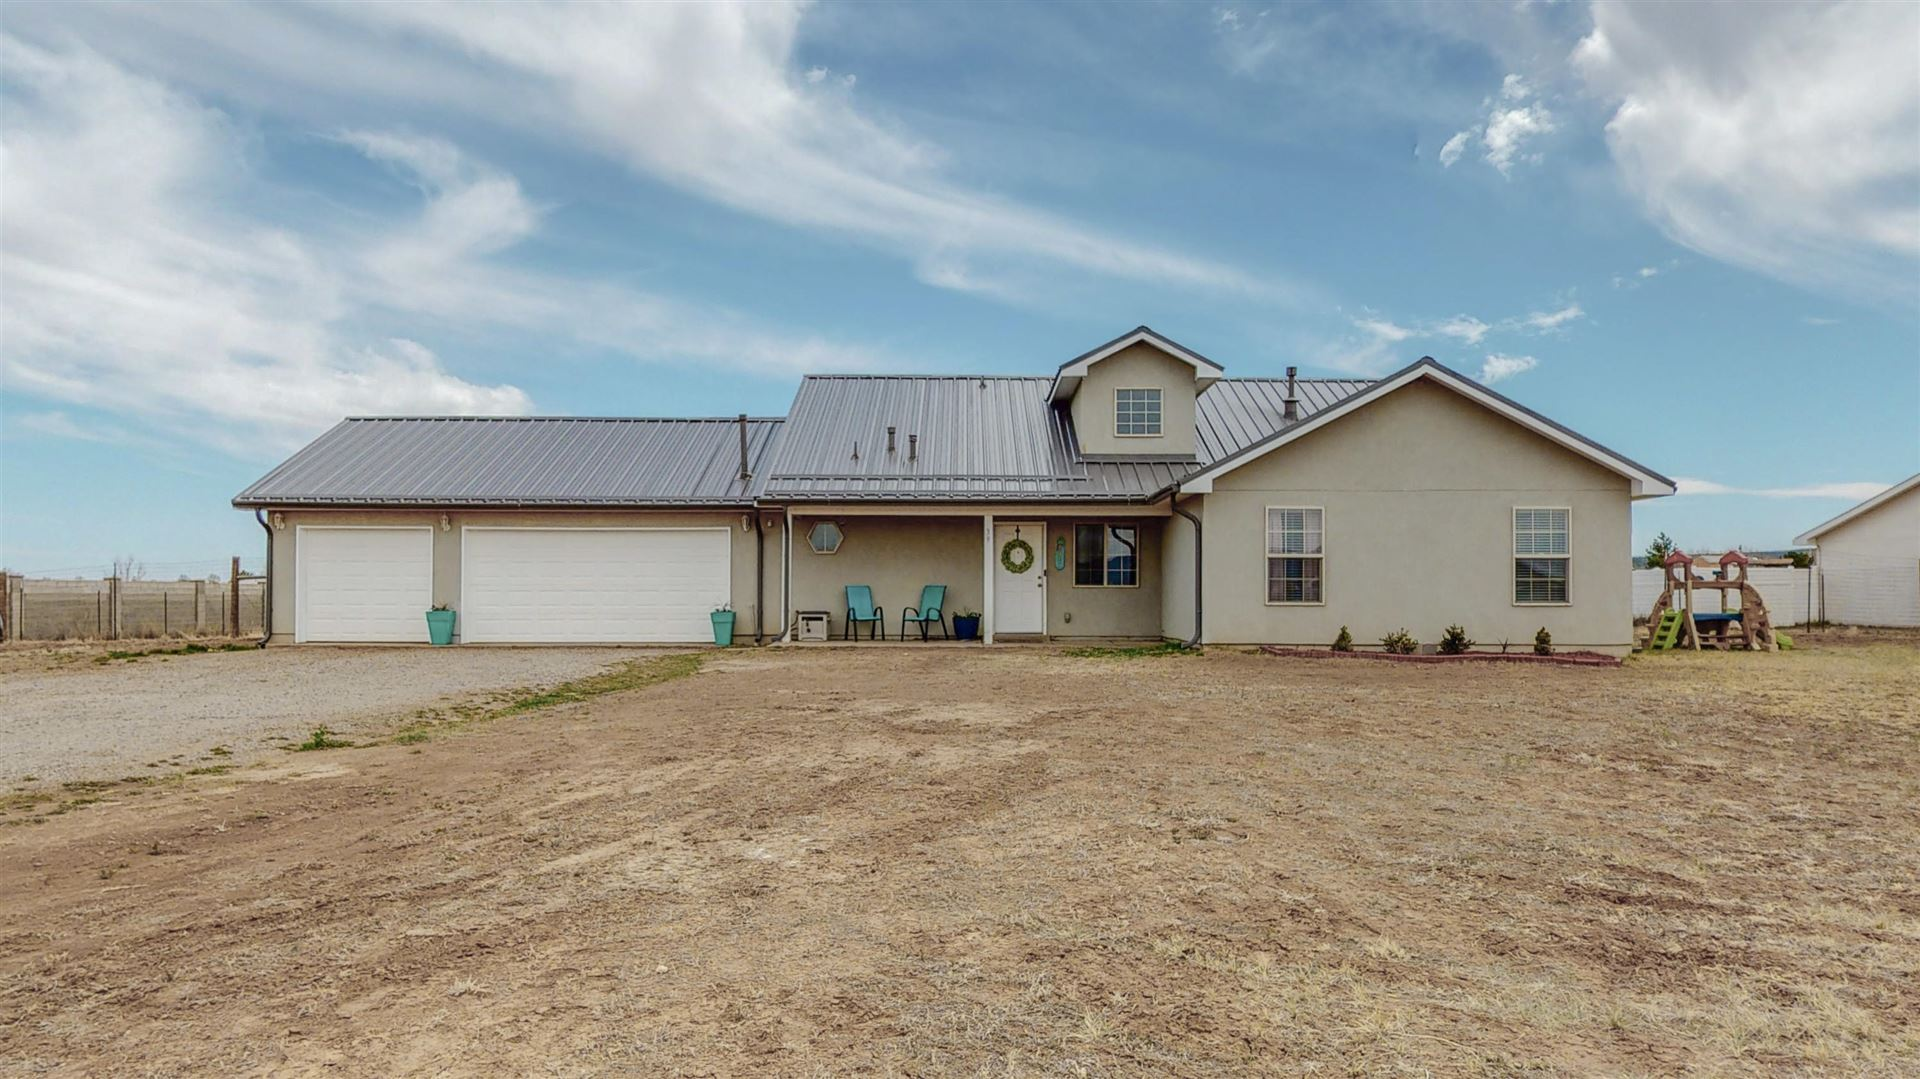 Photo for 39 Epoch Drive, Edgewood, NM 87015 (MLS # 989823)